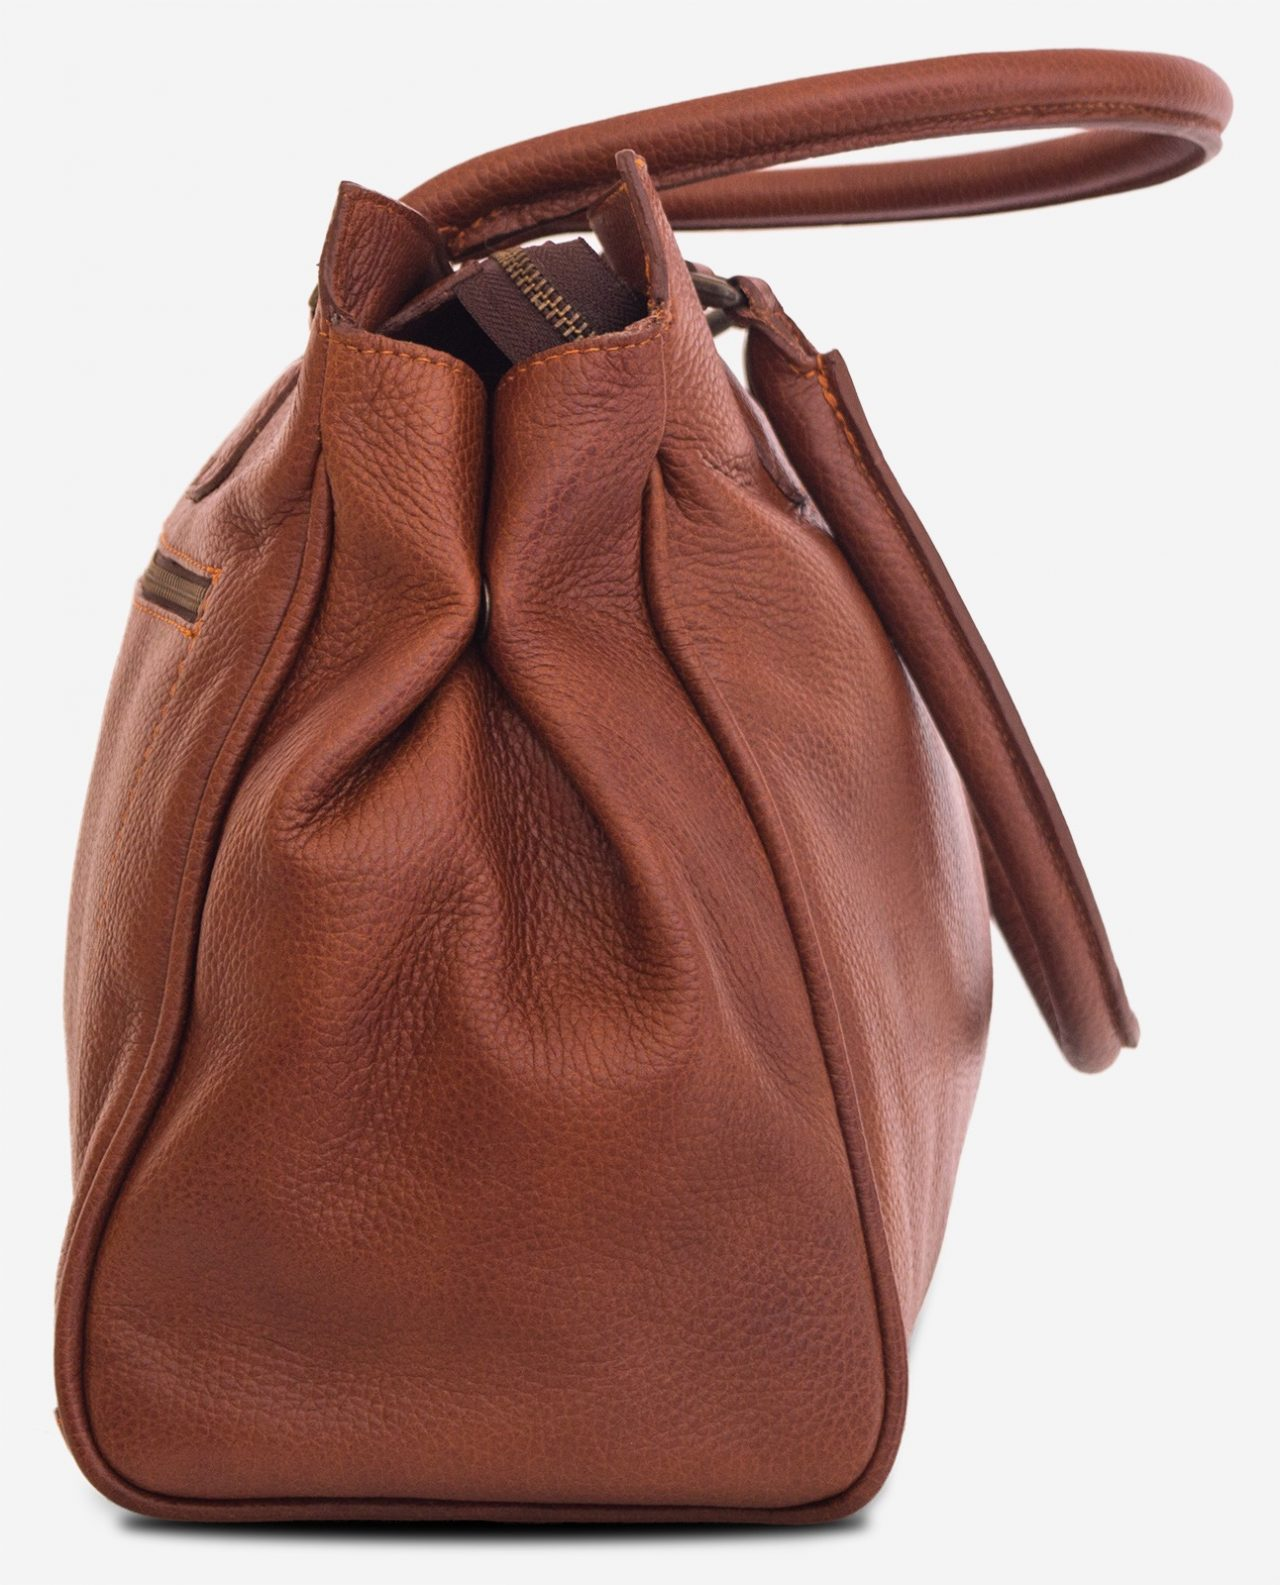 Side view of the woman soft leather handbag for student.